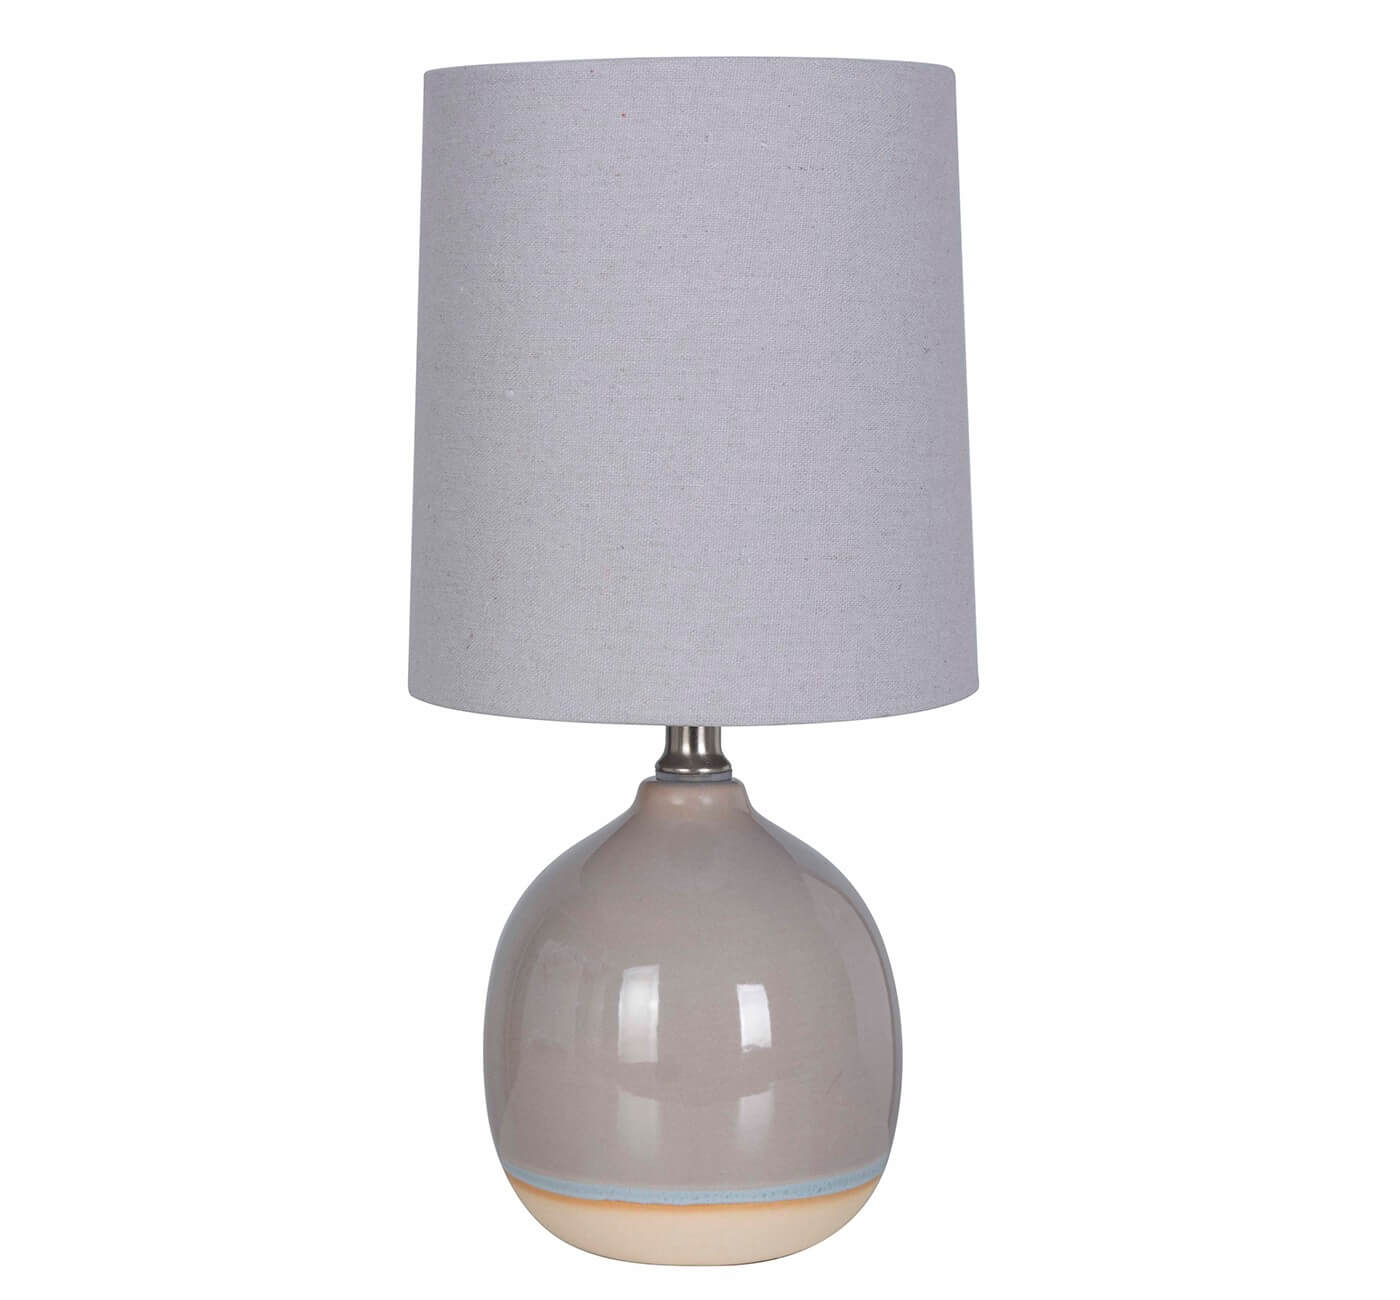 20 Target Table Lamps That Make A Chic